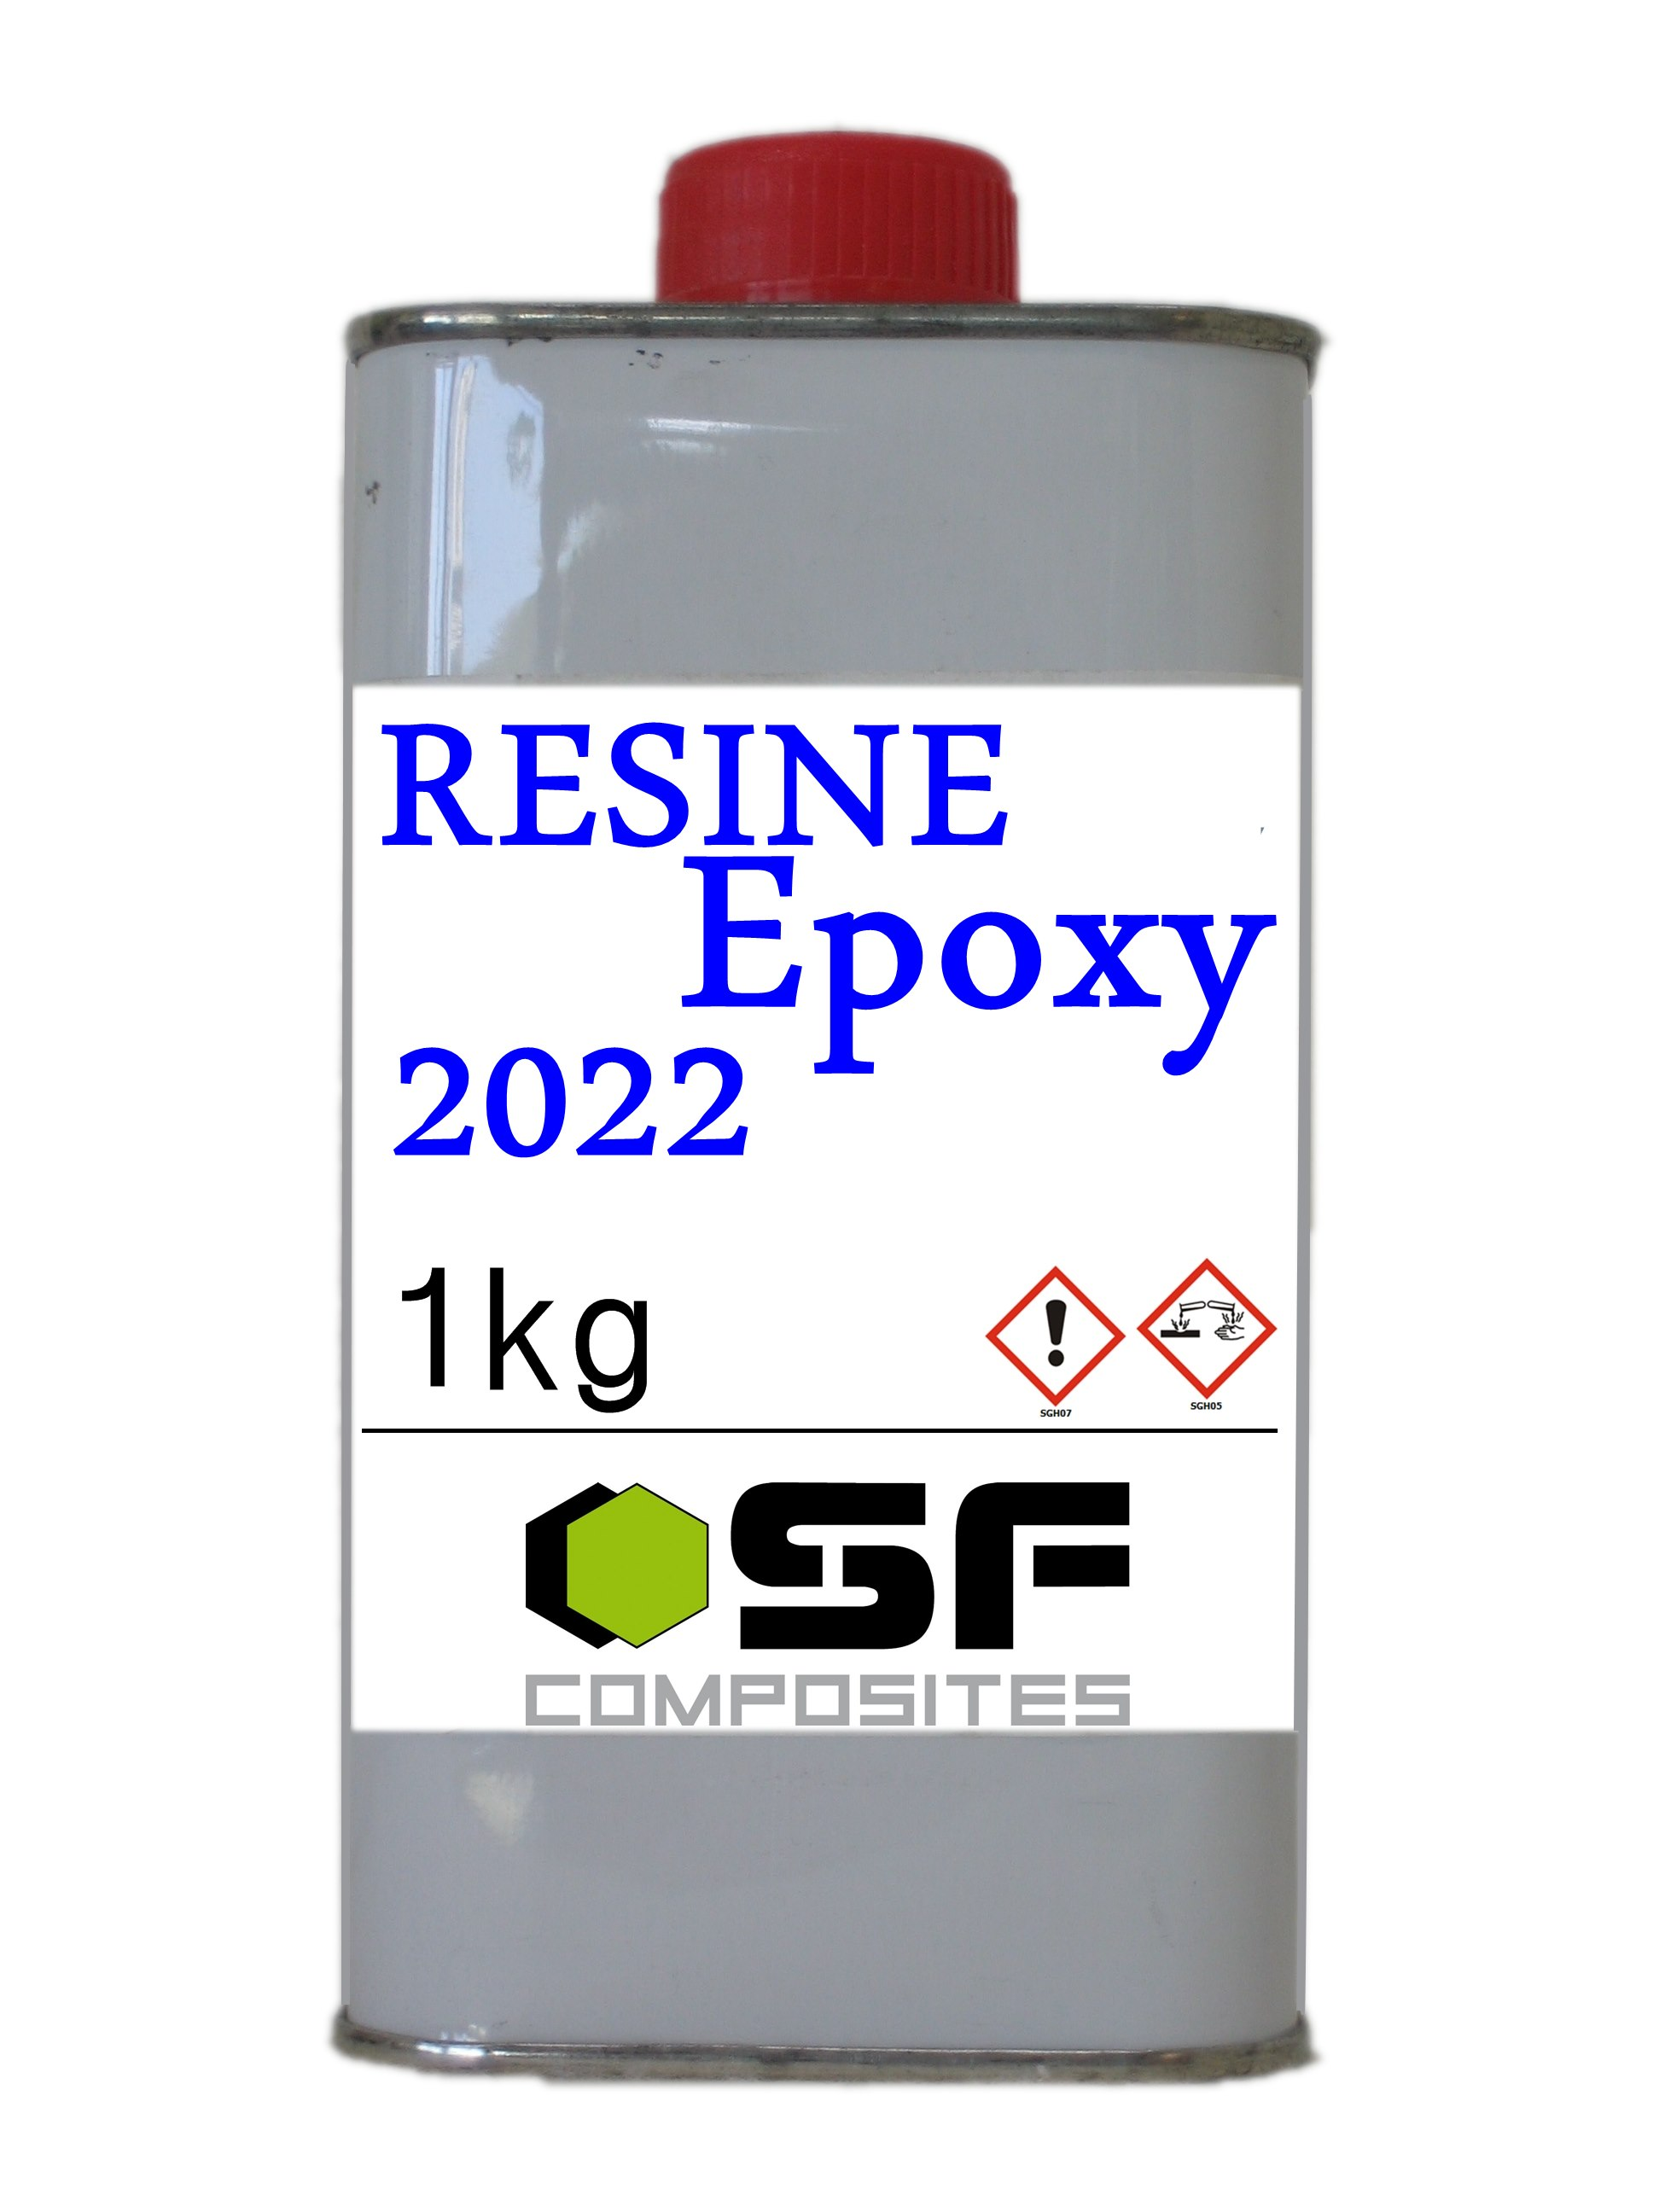 resine epoxy 2022 h perf 1kg sf composites resine epoxy 2022 h perf 1kg resine epoxy. Black Bedroom Furniture Sets. Home Design Ideas